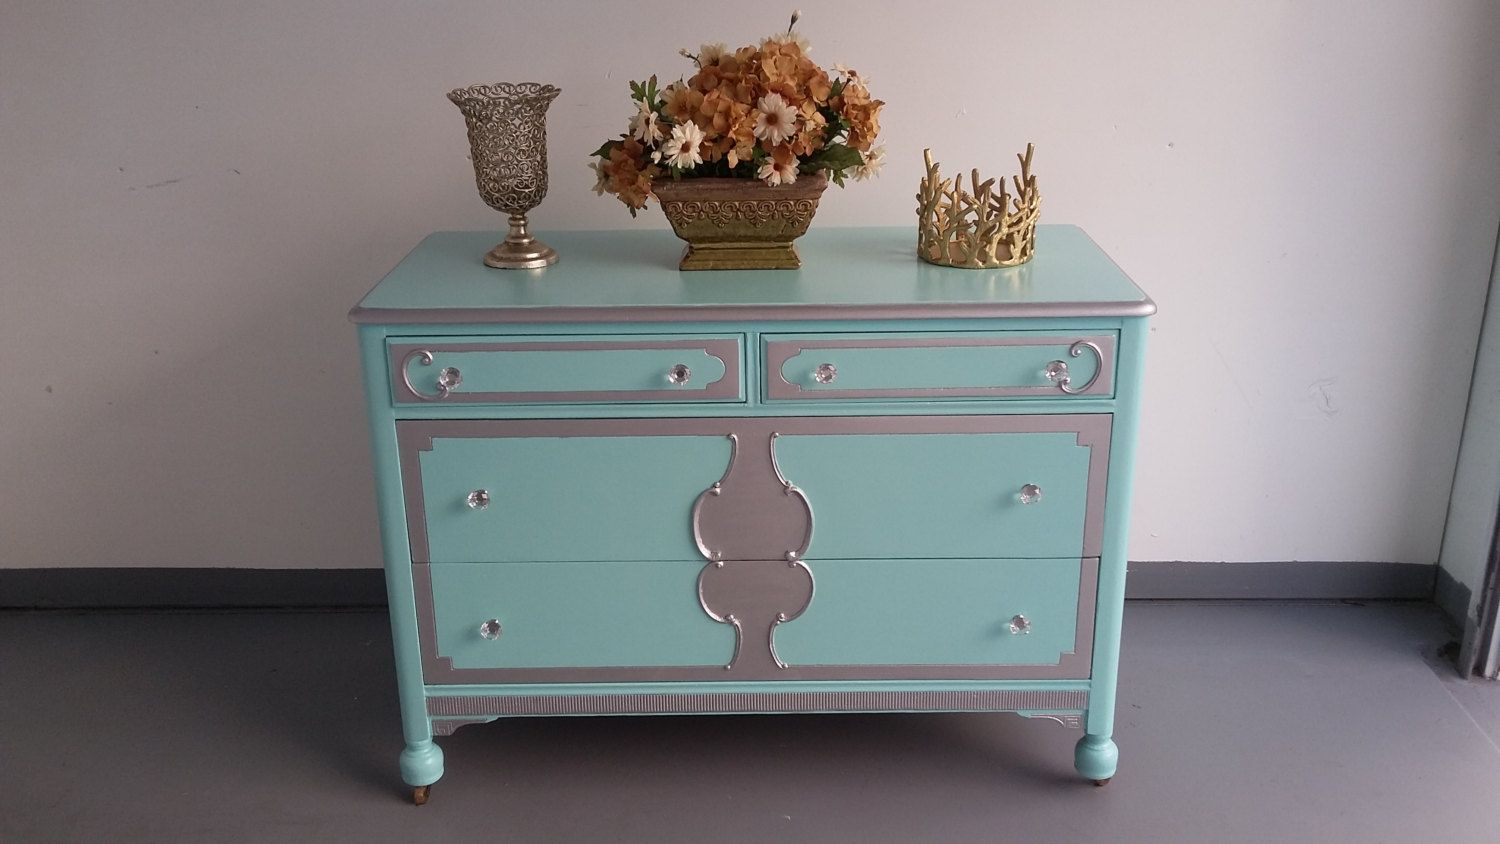 Antique 4 Drawers Chest, Vintage Dresser, Changing Table